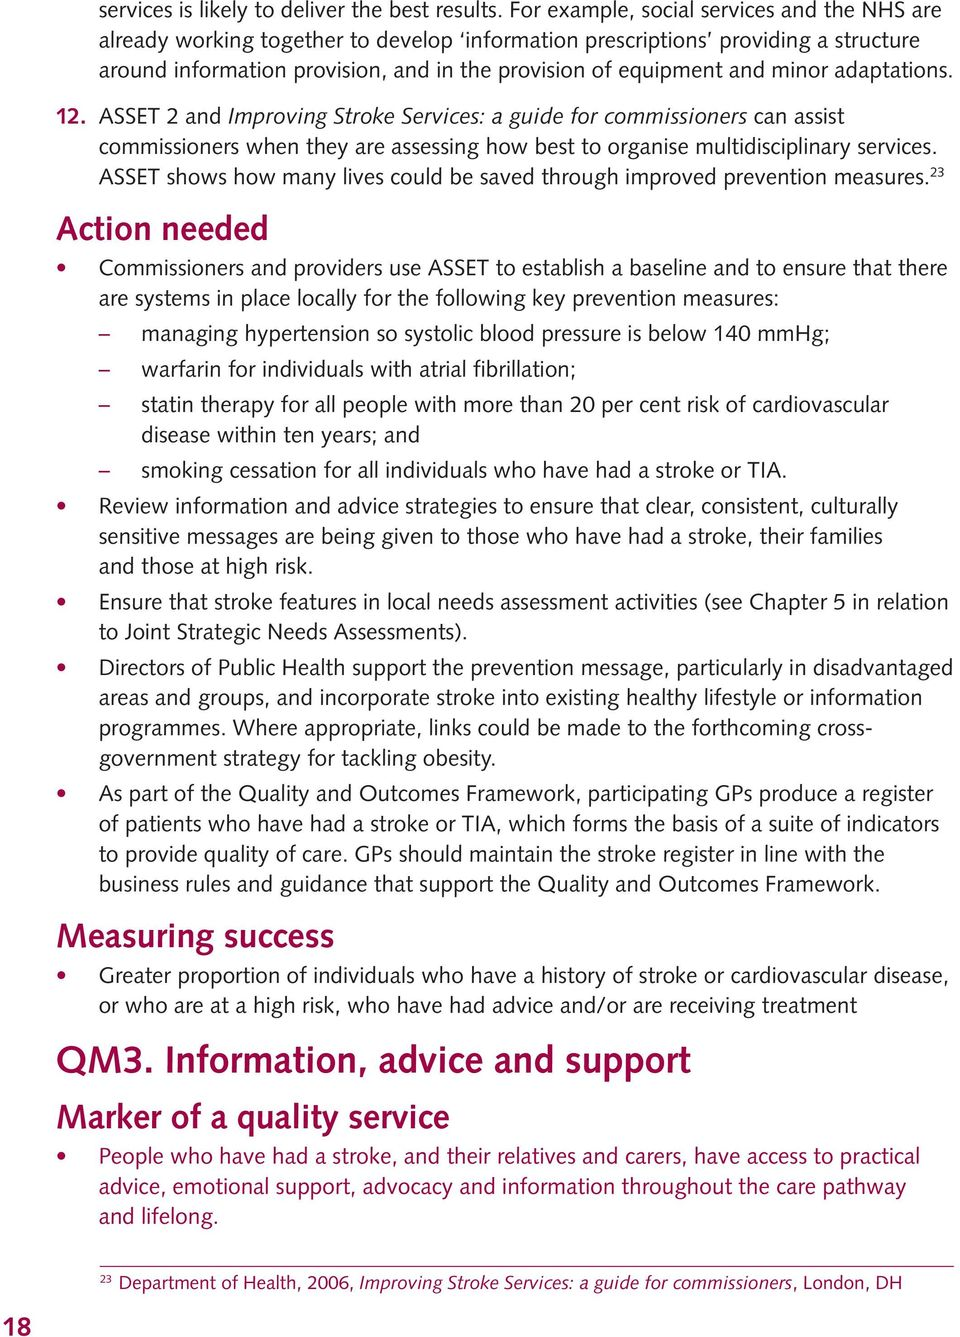 minor adaptations. 12. ASSET 2 and Improving Stroke Services: a guide for commissioners can assist commissioners when they are assessing how best to organise multidisciplinary services.